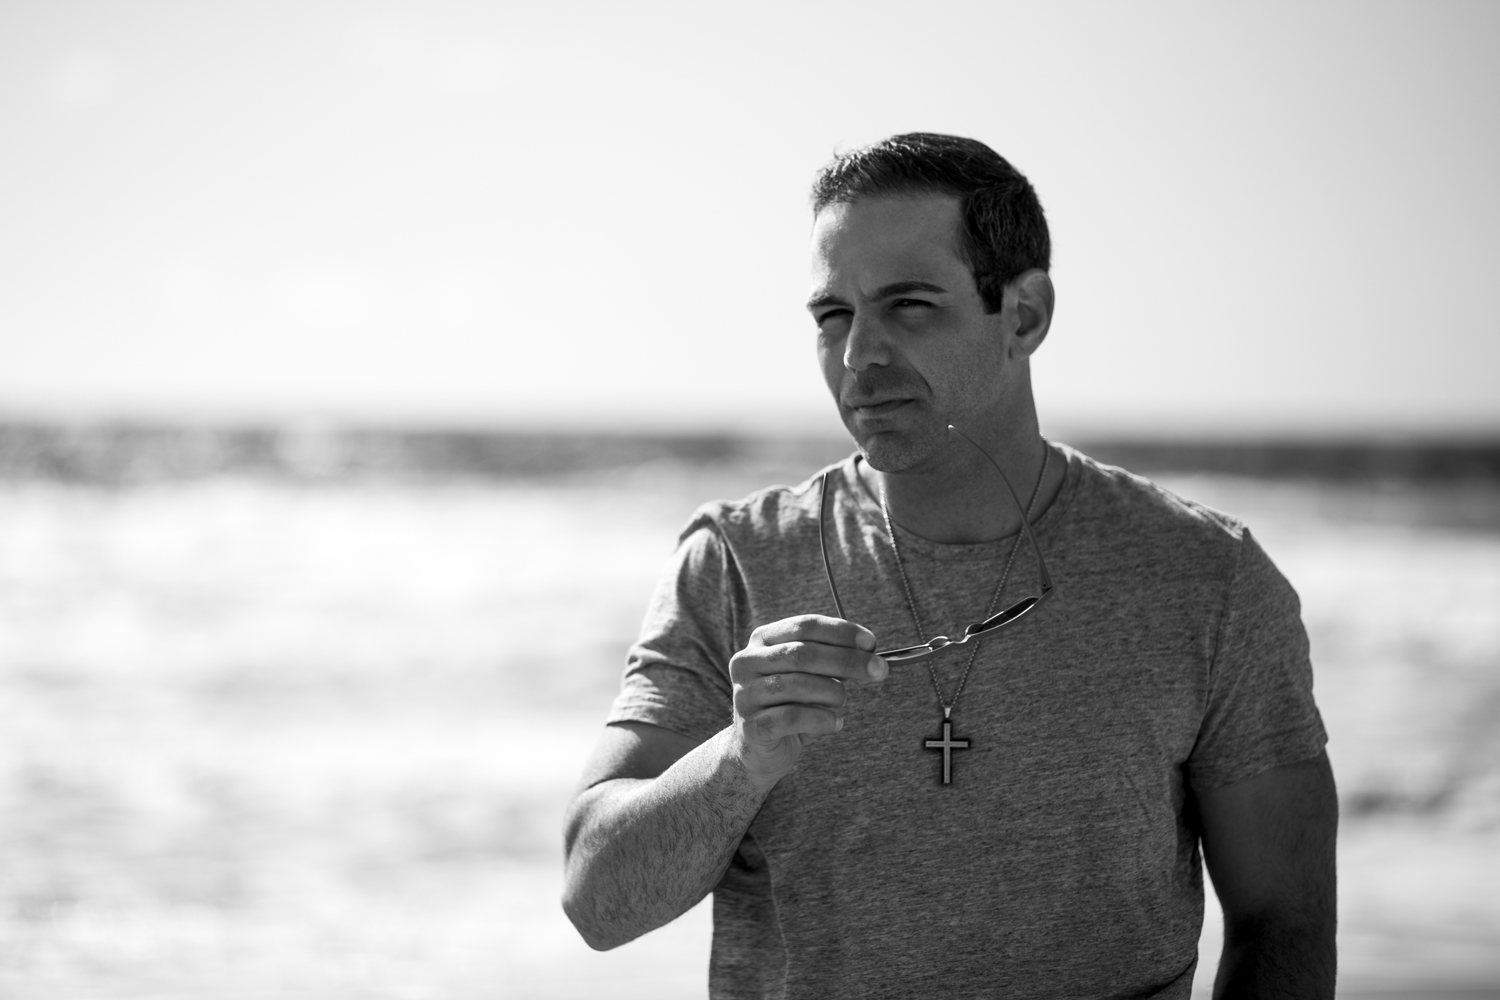 Break time at the beach with Adam.   Canon 6D, Canon 50mm f/1.4 (iso50, f/2, 1/3200s)